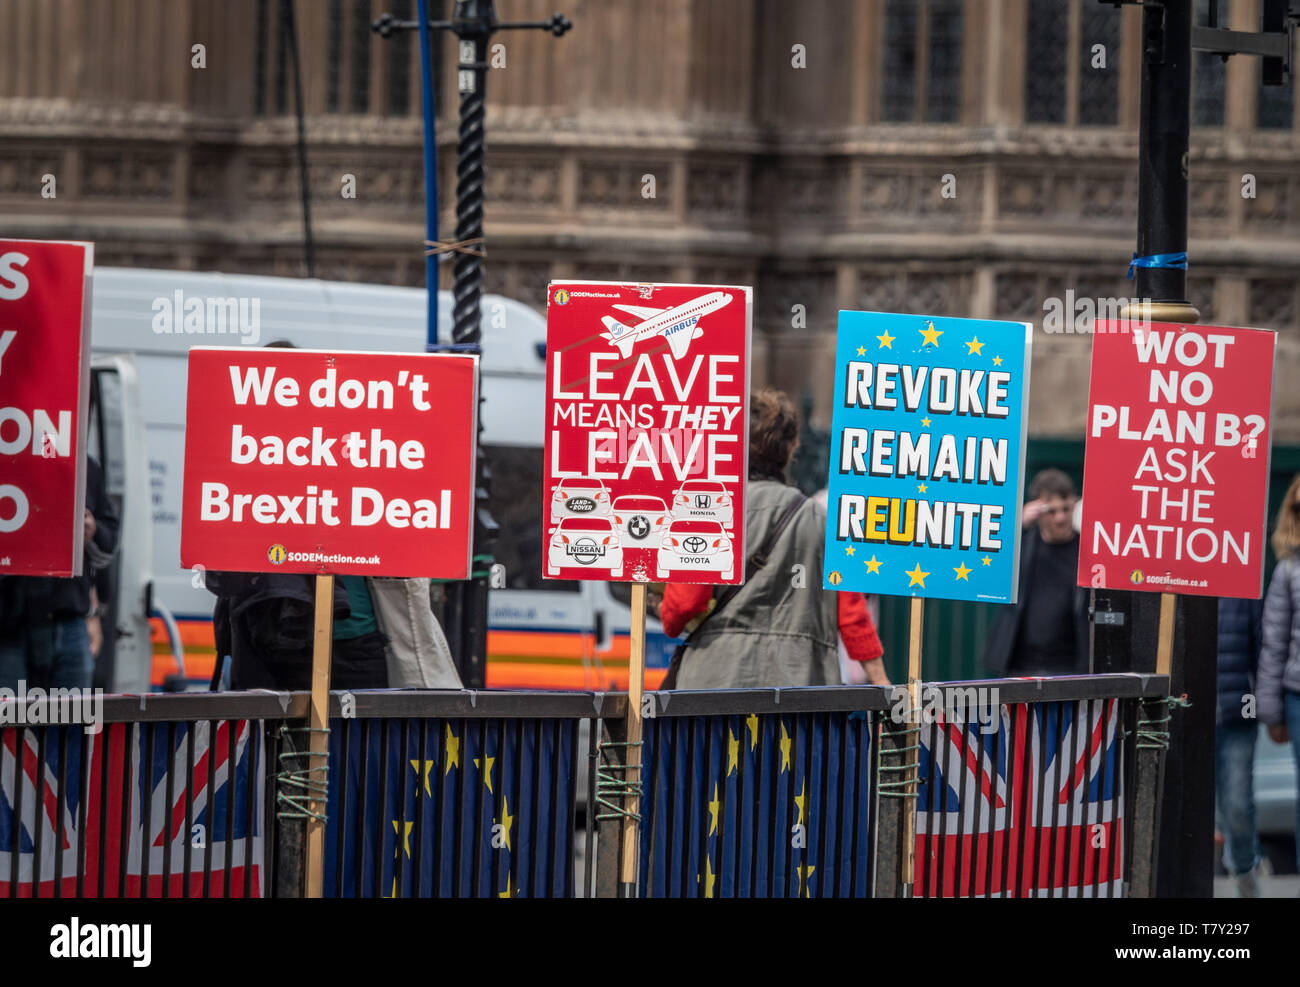 Anti-Brexit placards fastened to railings outside Westminster, London, UK. - Stock Image